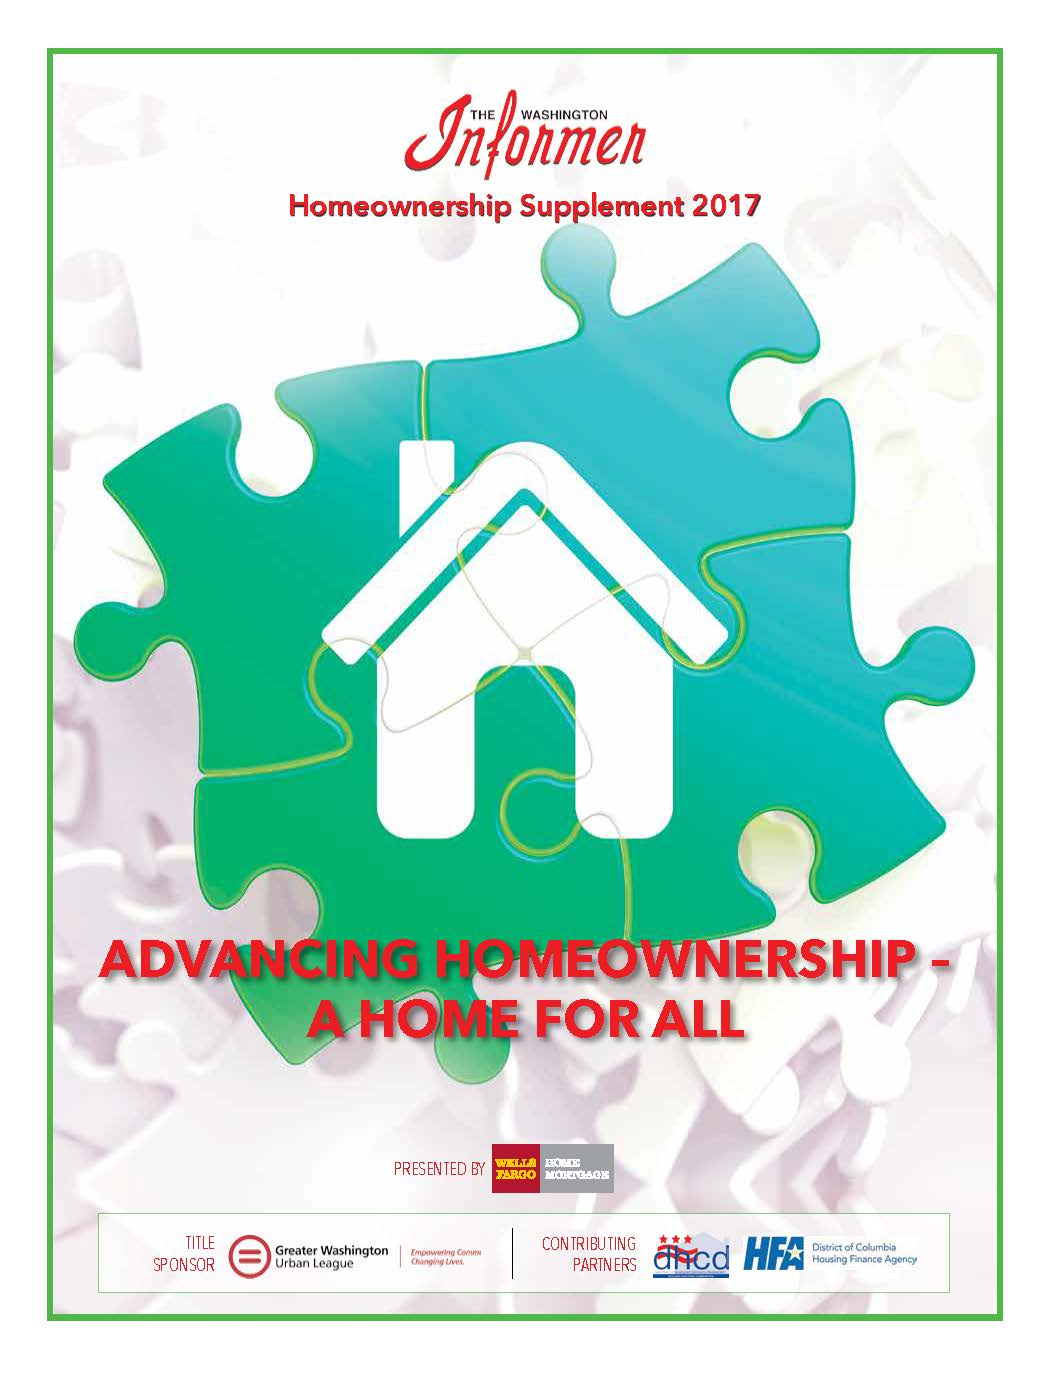 2017 Homeownership Supplement